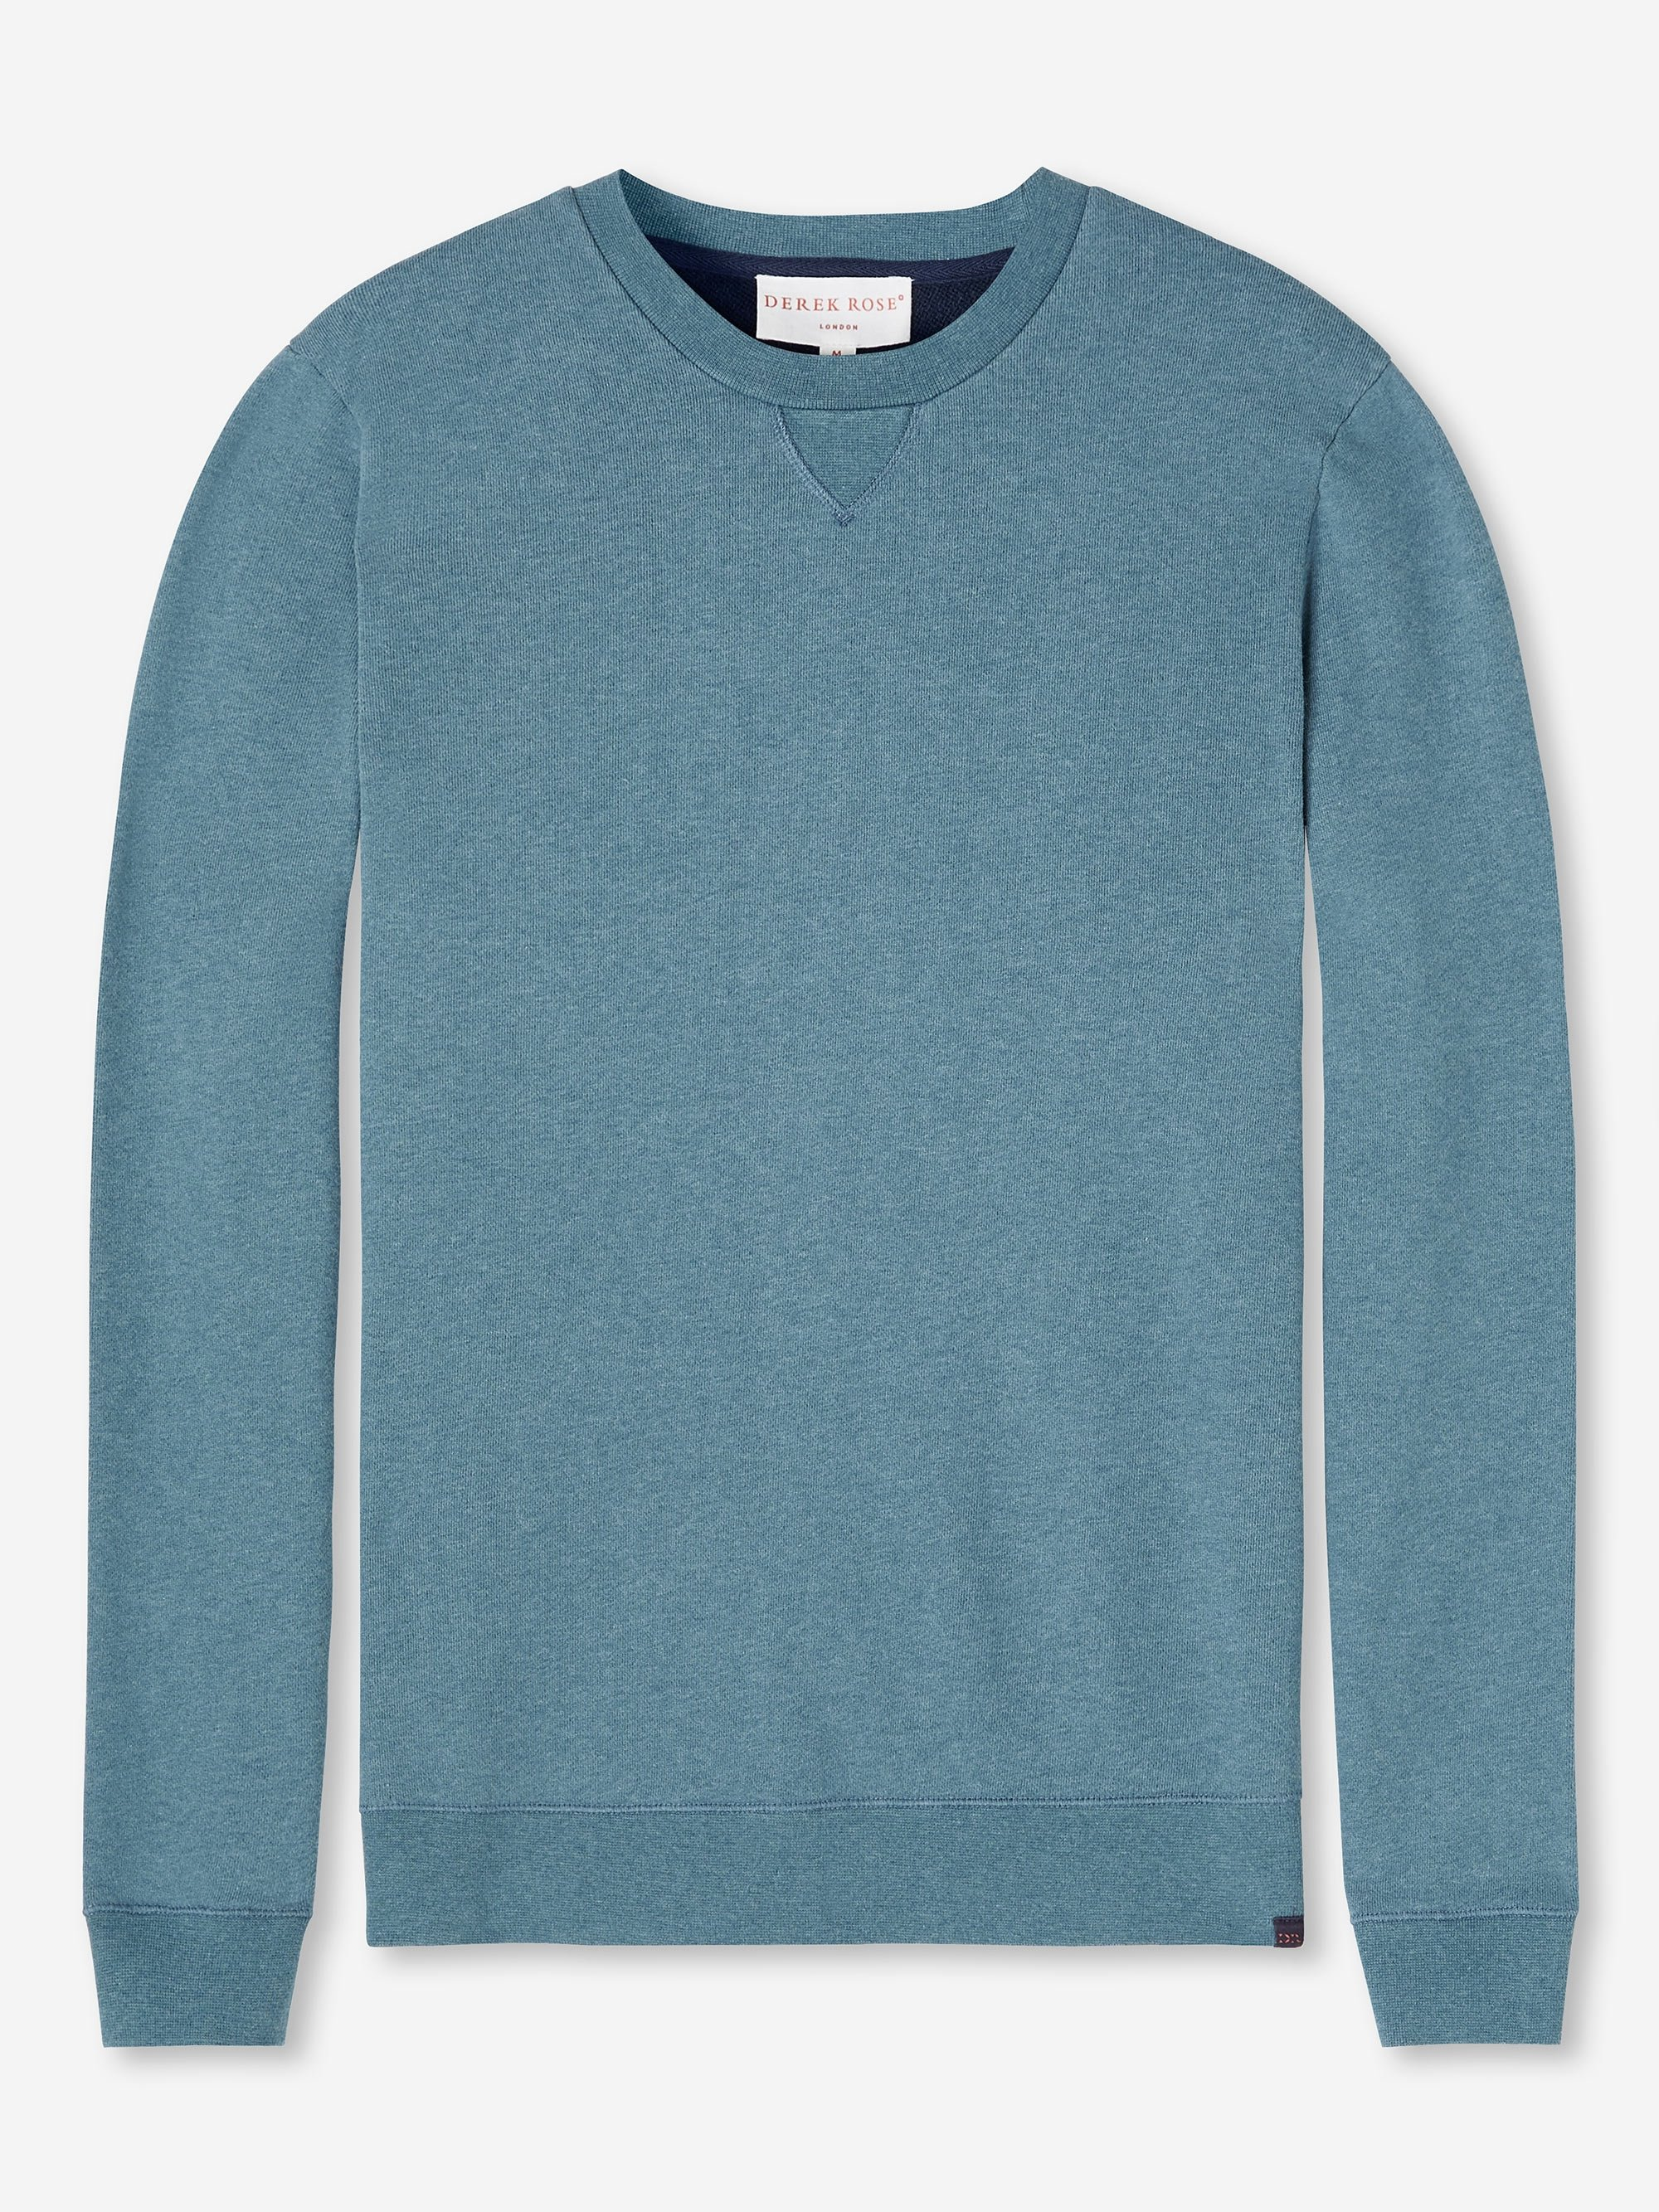 Men's Sweatshirt Devon 3 Loopback Cotton Blue